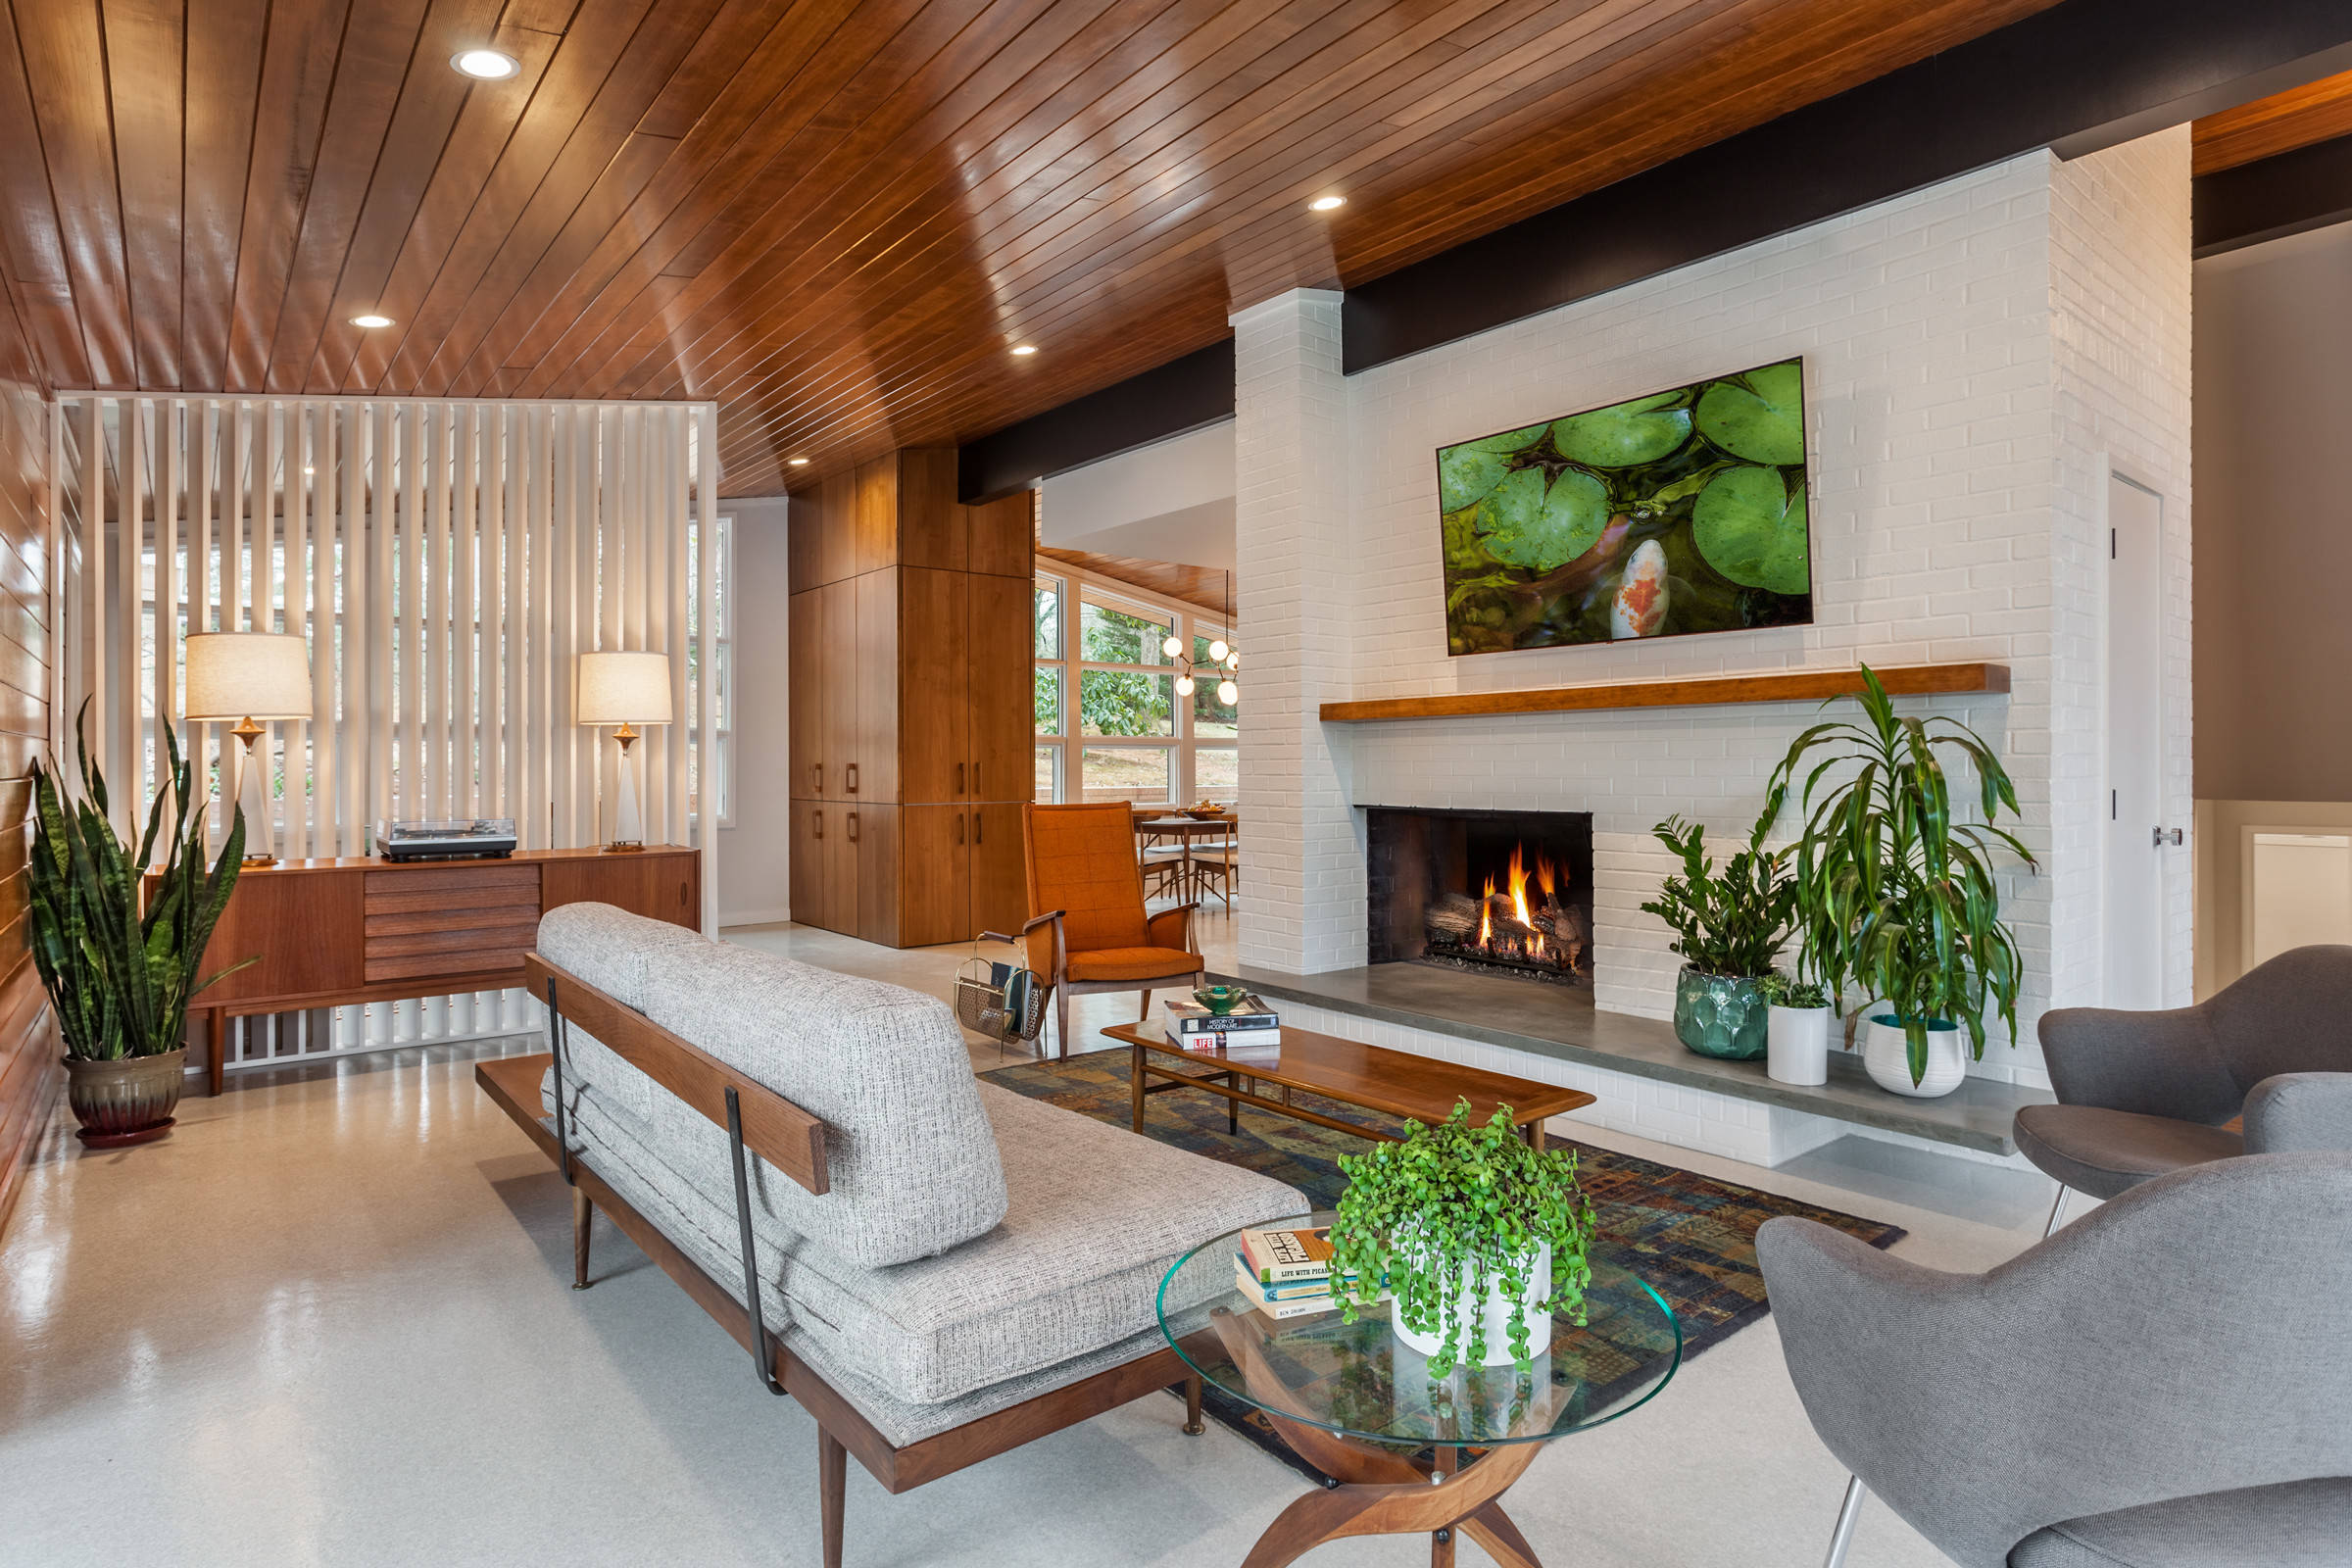 75 Beautiful Mid Century Modern Living Room With A Brick Fireplace Pictures Ideas November 2020 Houzz